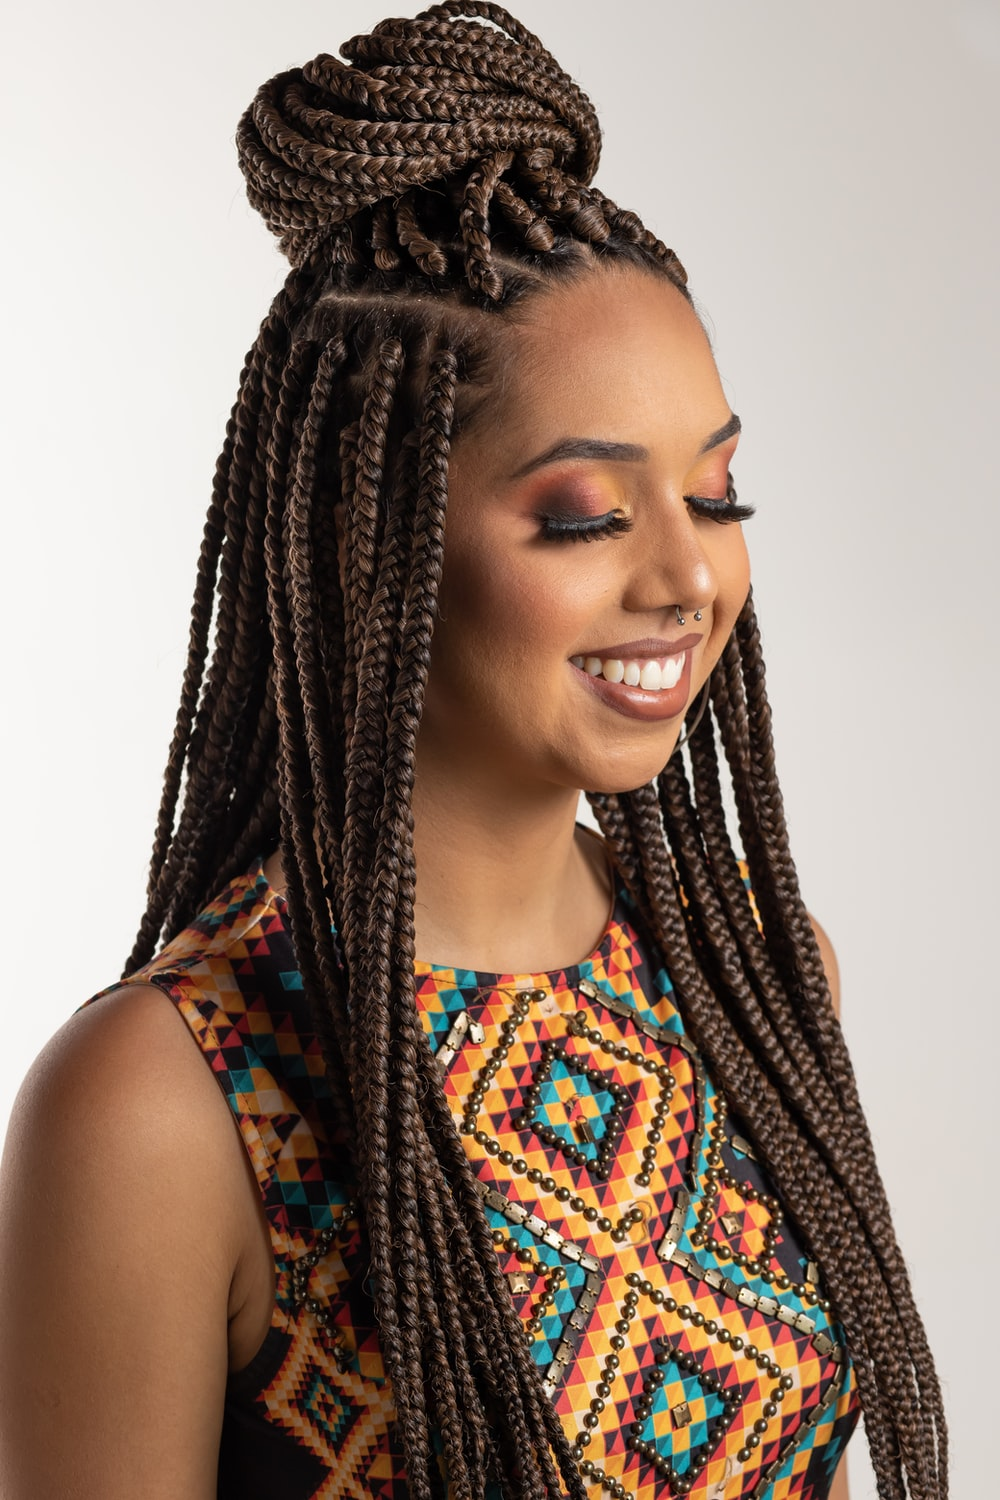 woman wearing multicolored blouse and braided hair